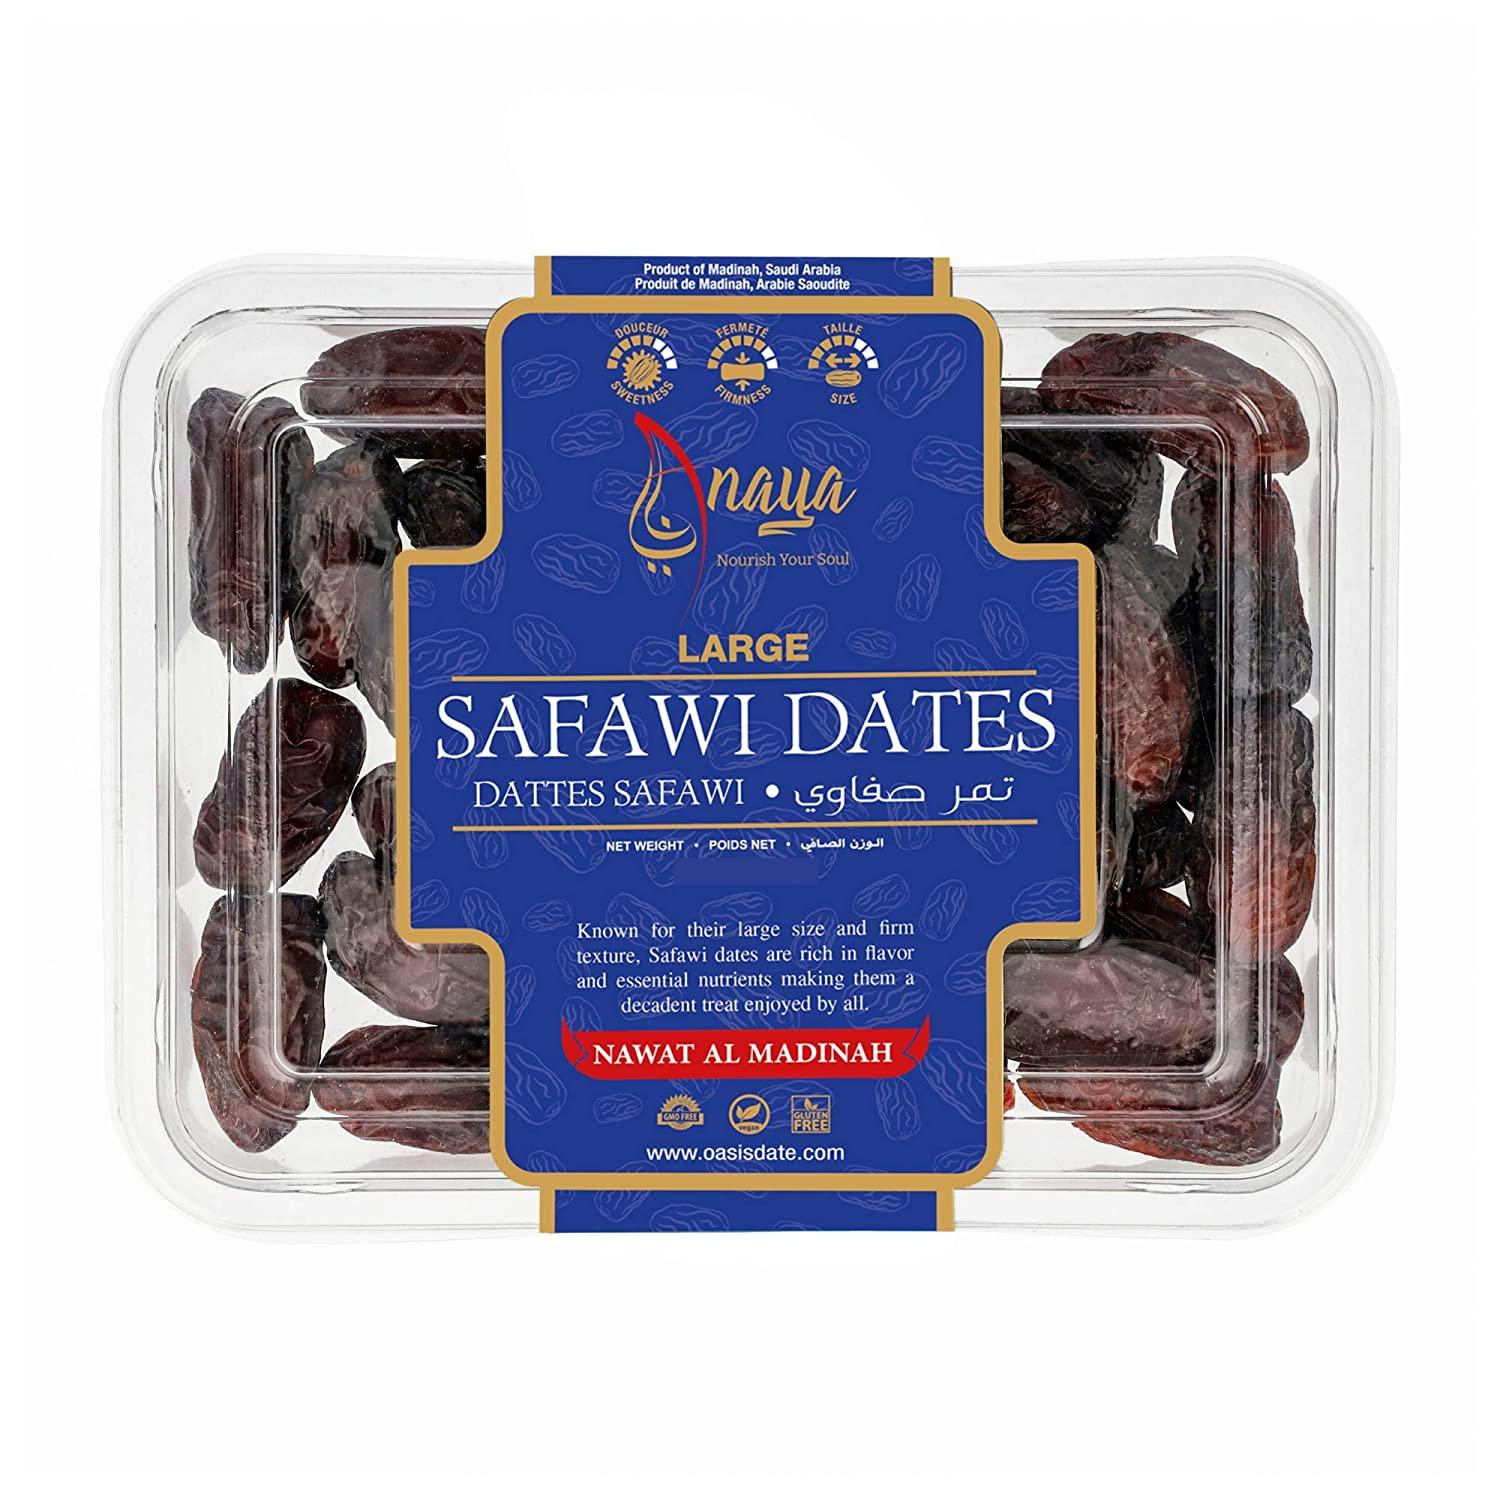 Max 68% OFF Super sale period limited Large Safawi Dates Al-Madinah 400g from